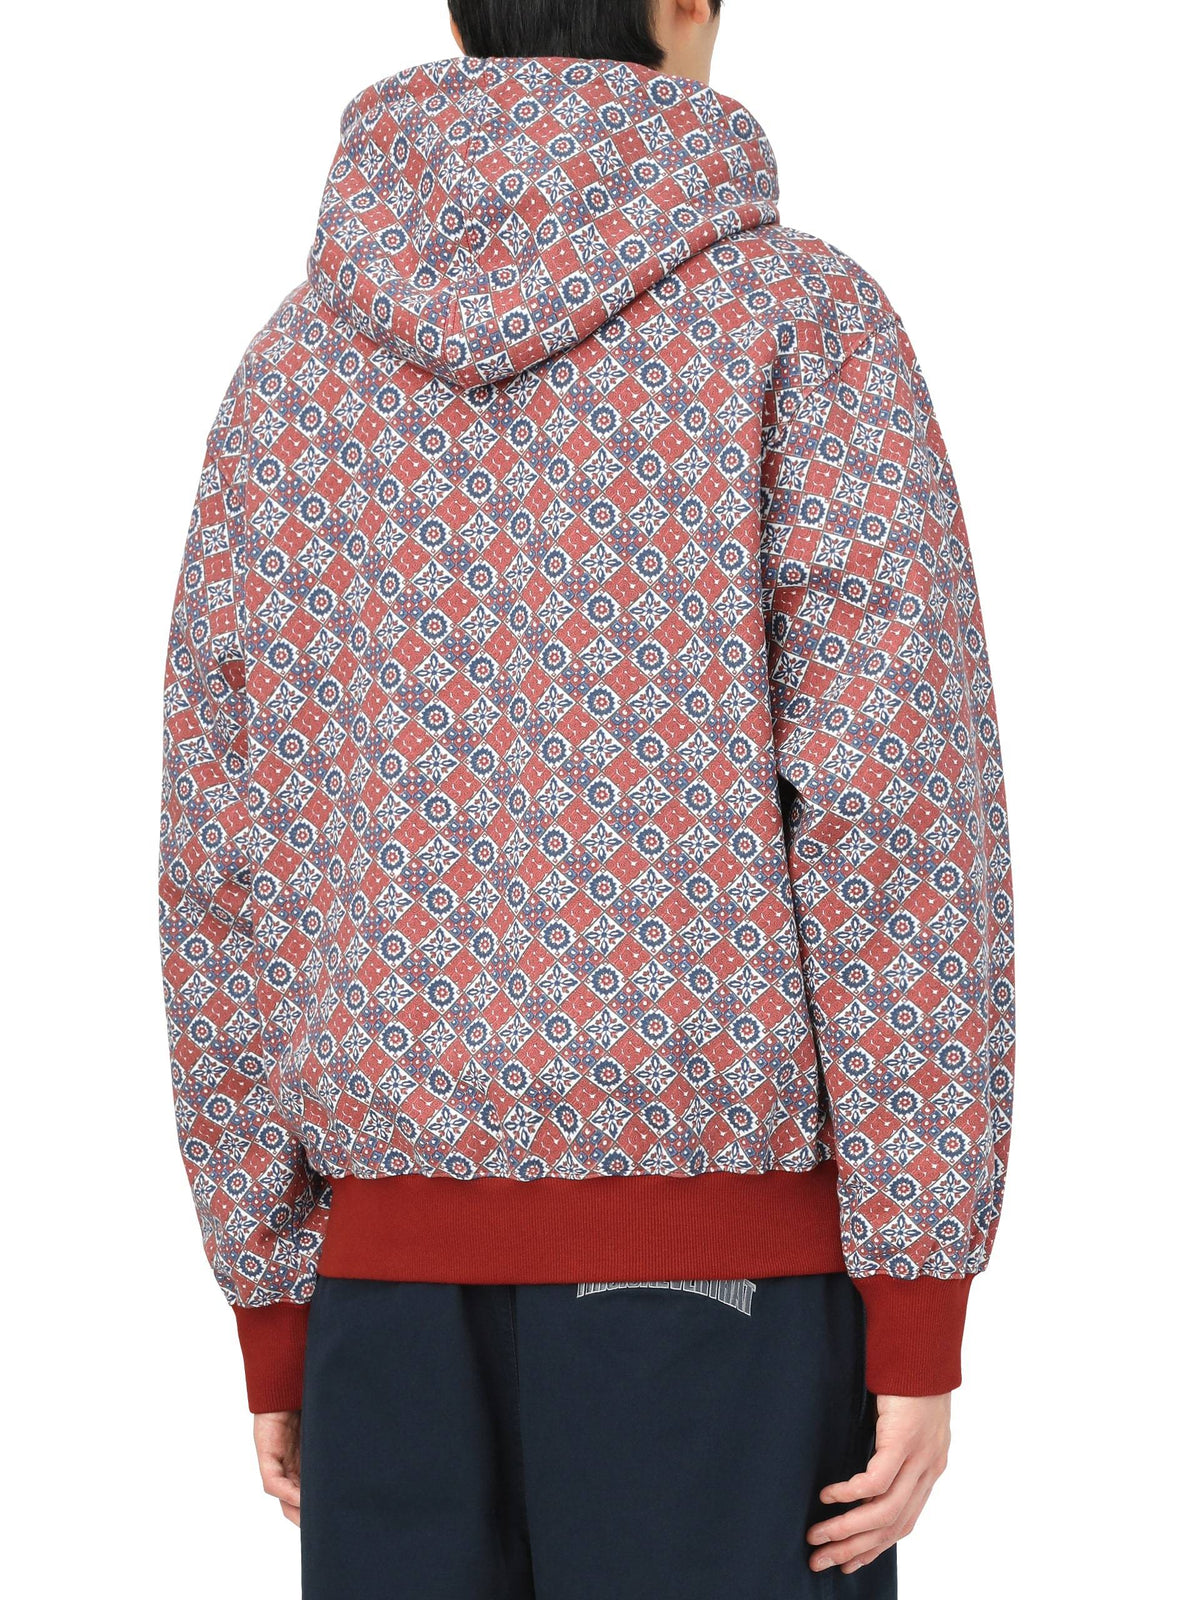 Tile Hooded Sweatshirt Sweatshirts